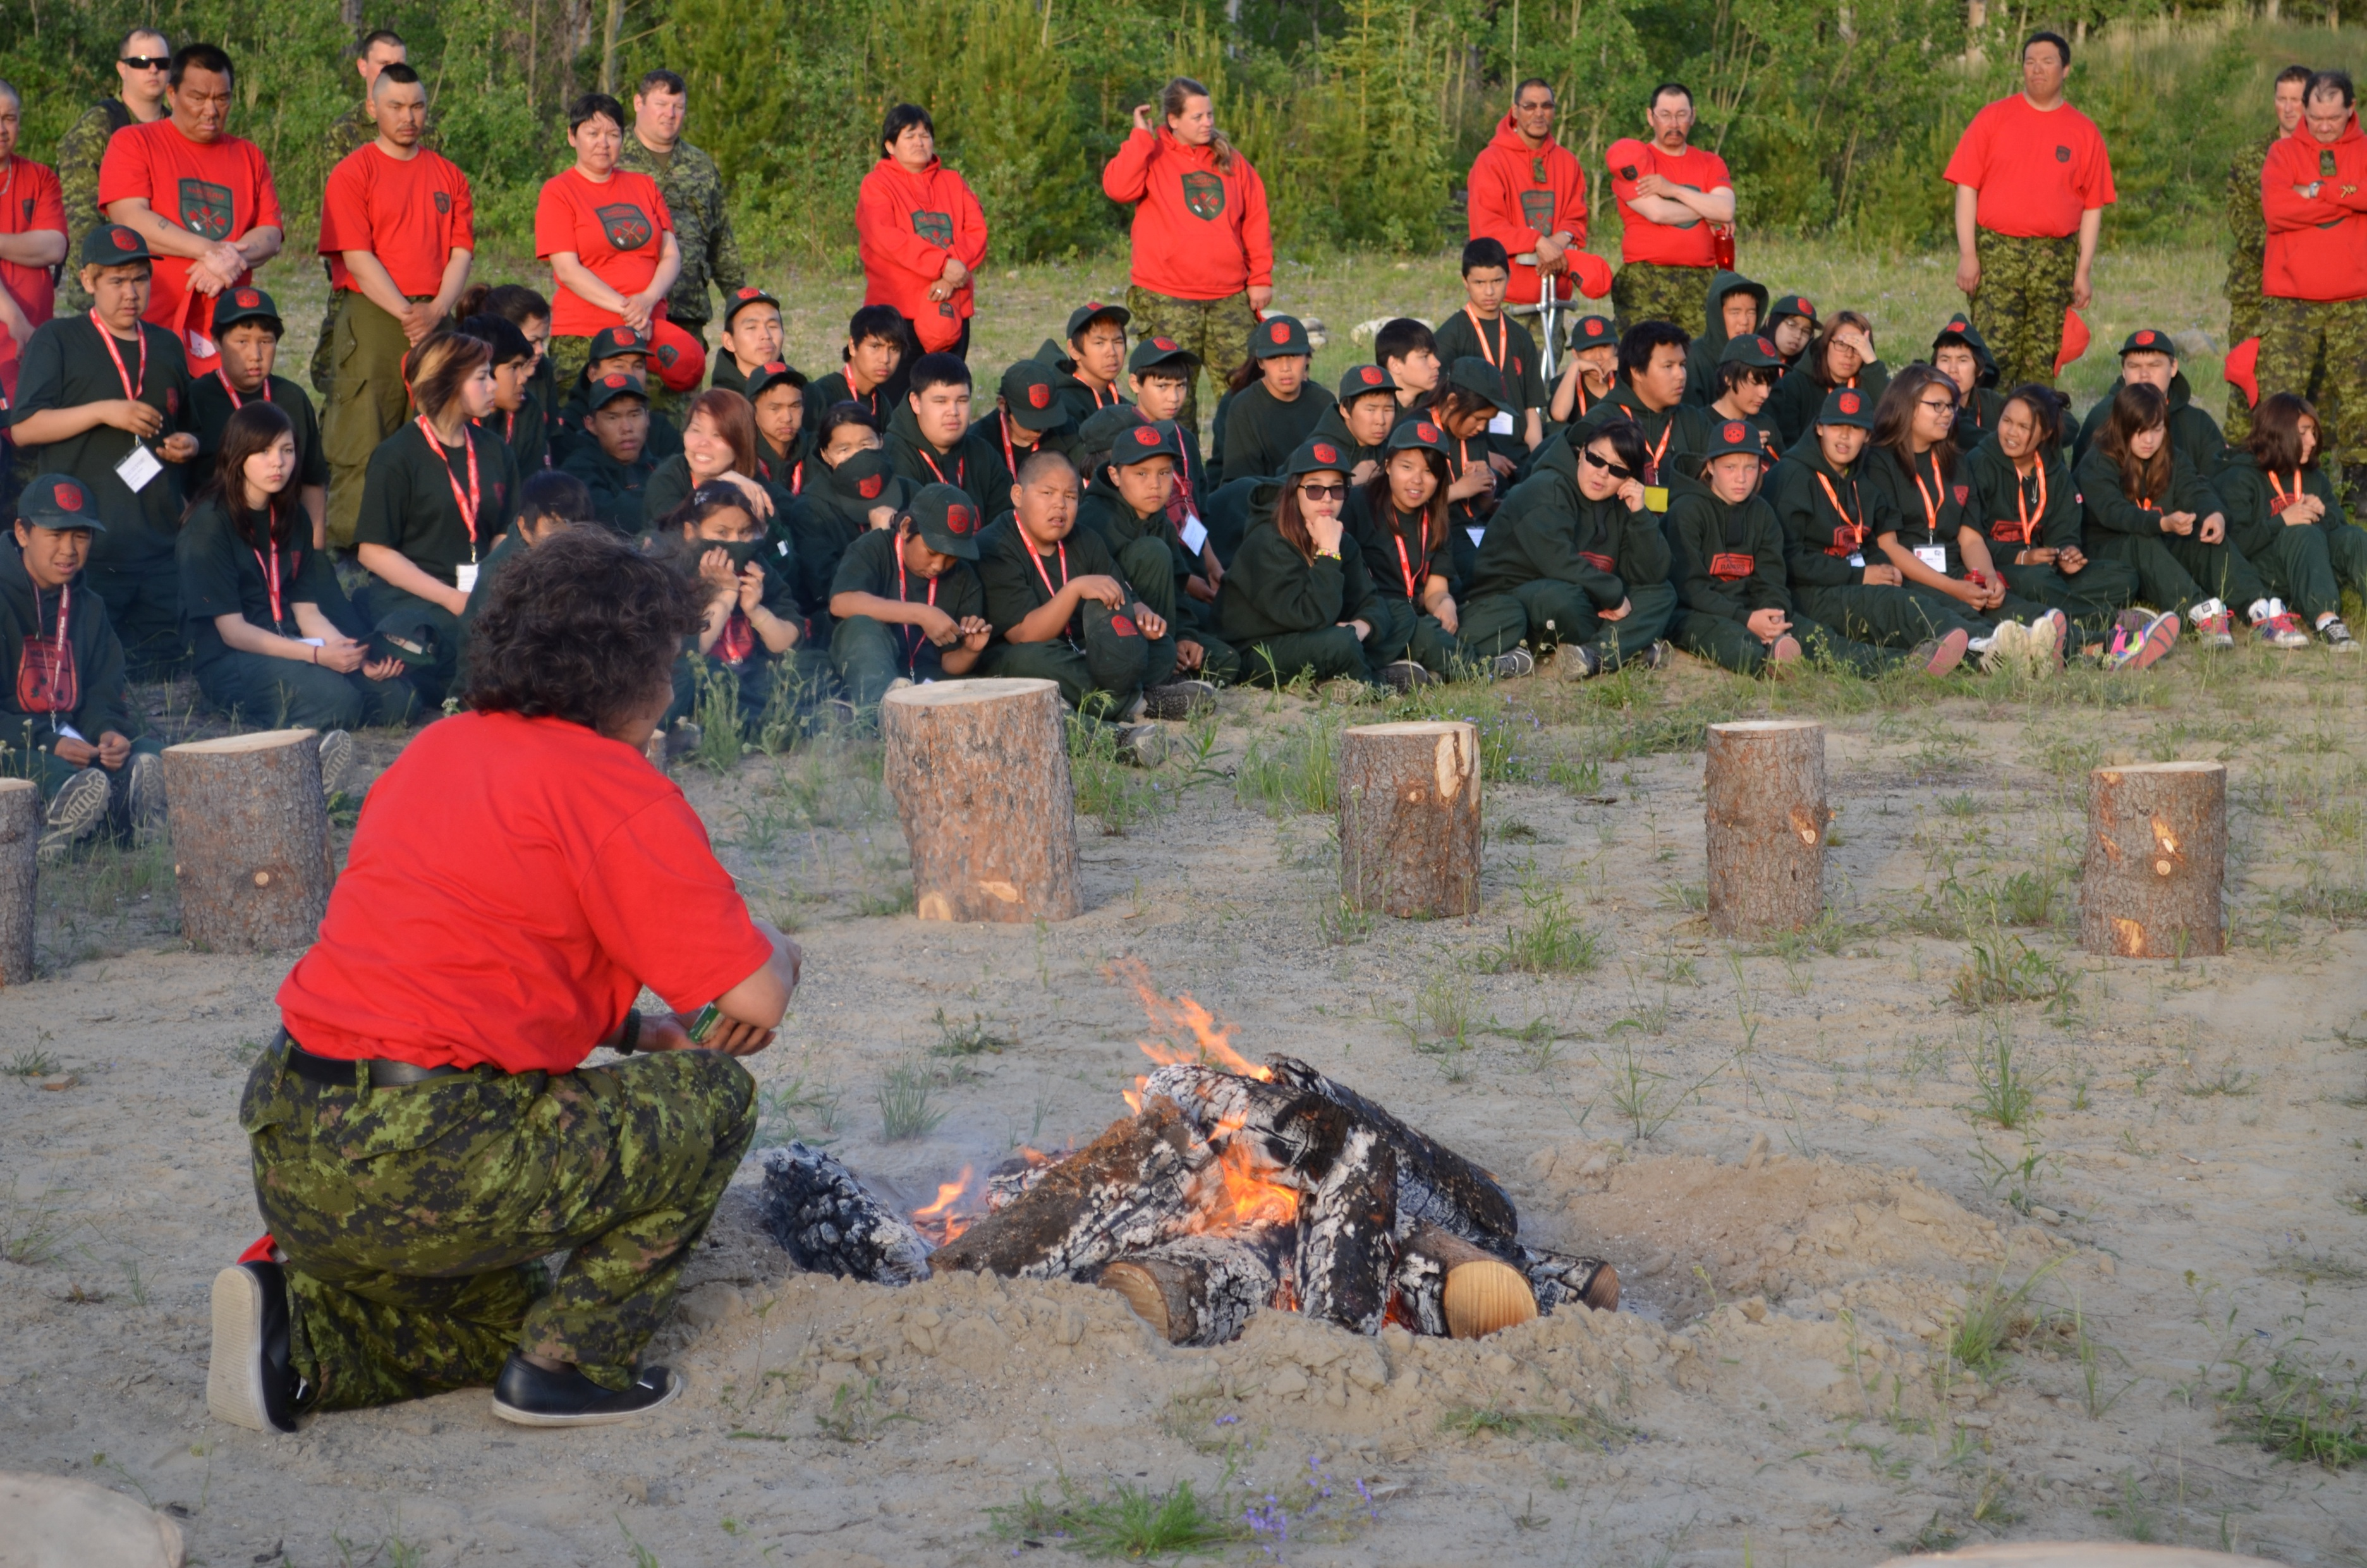 Canadian Ranger Dollie Simon offers a traditional smoke prayer during the opening ceremony for the Junior Canadian Rangers – Enhanced Training Session in Whitehorse, YT on June 22, 2013. Photo by: Ranger Harry Kern, 1st Canadian Ranger Patrol Group. ©2013 DND/MDN Canada.